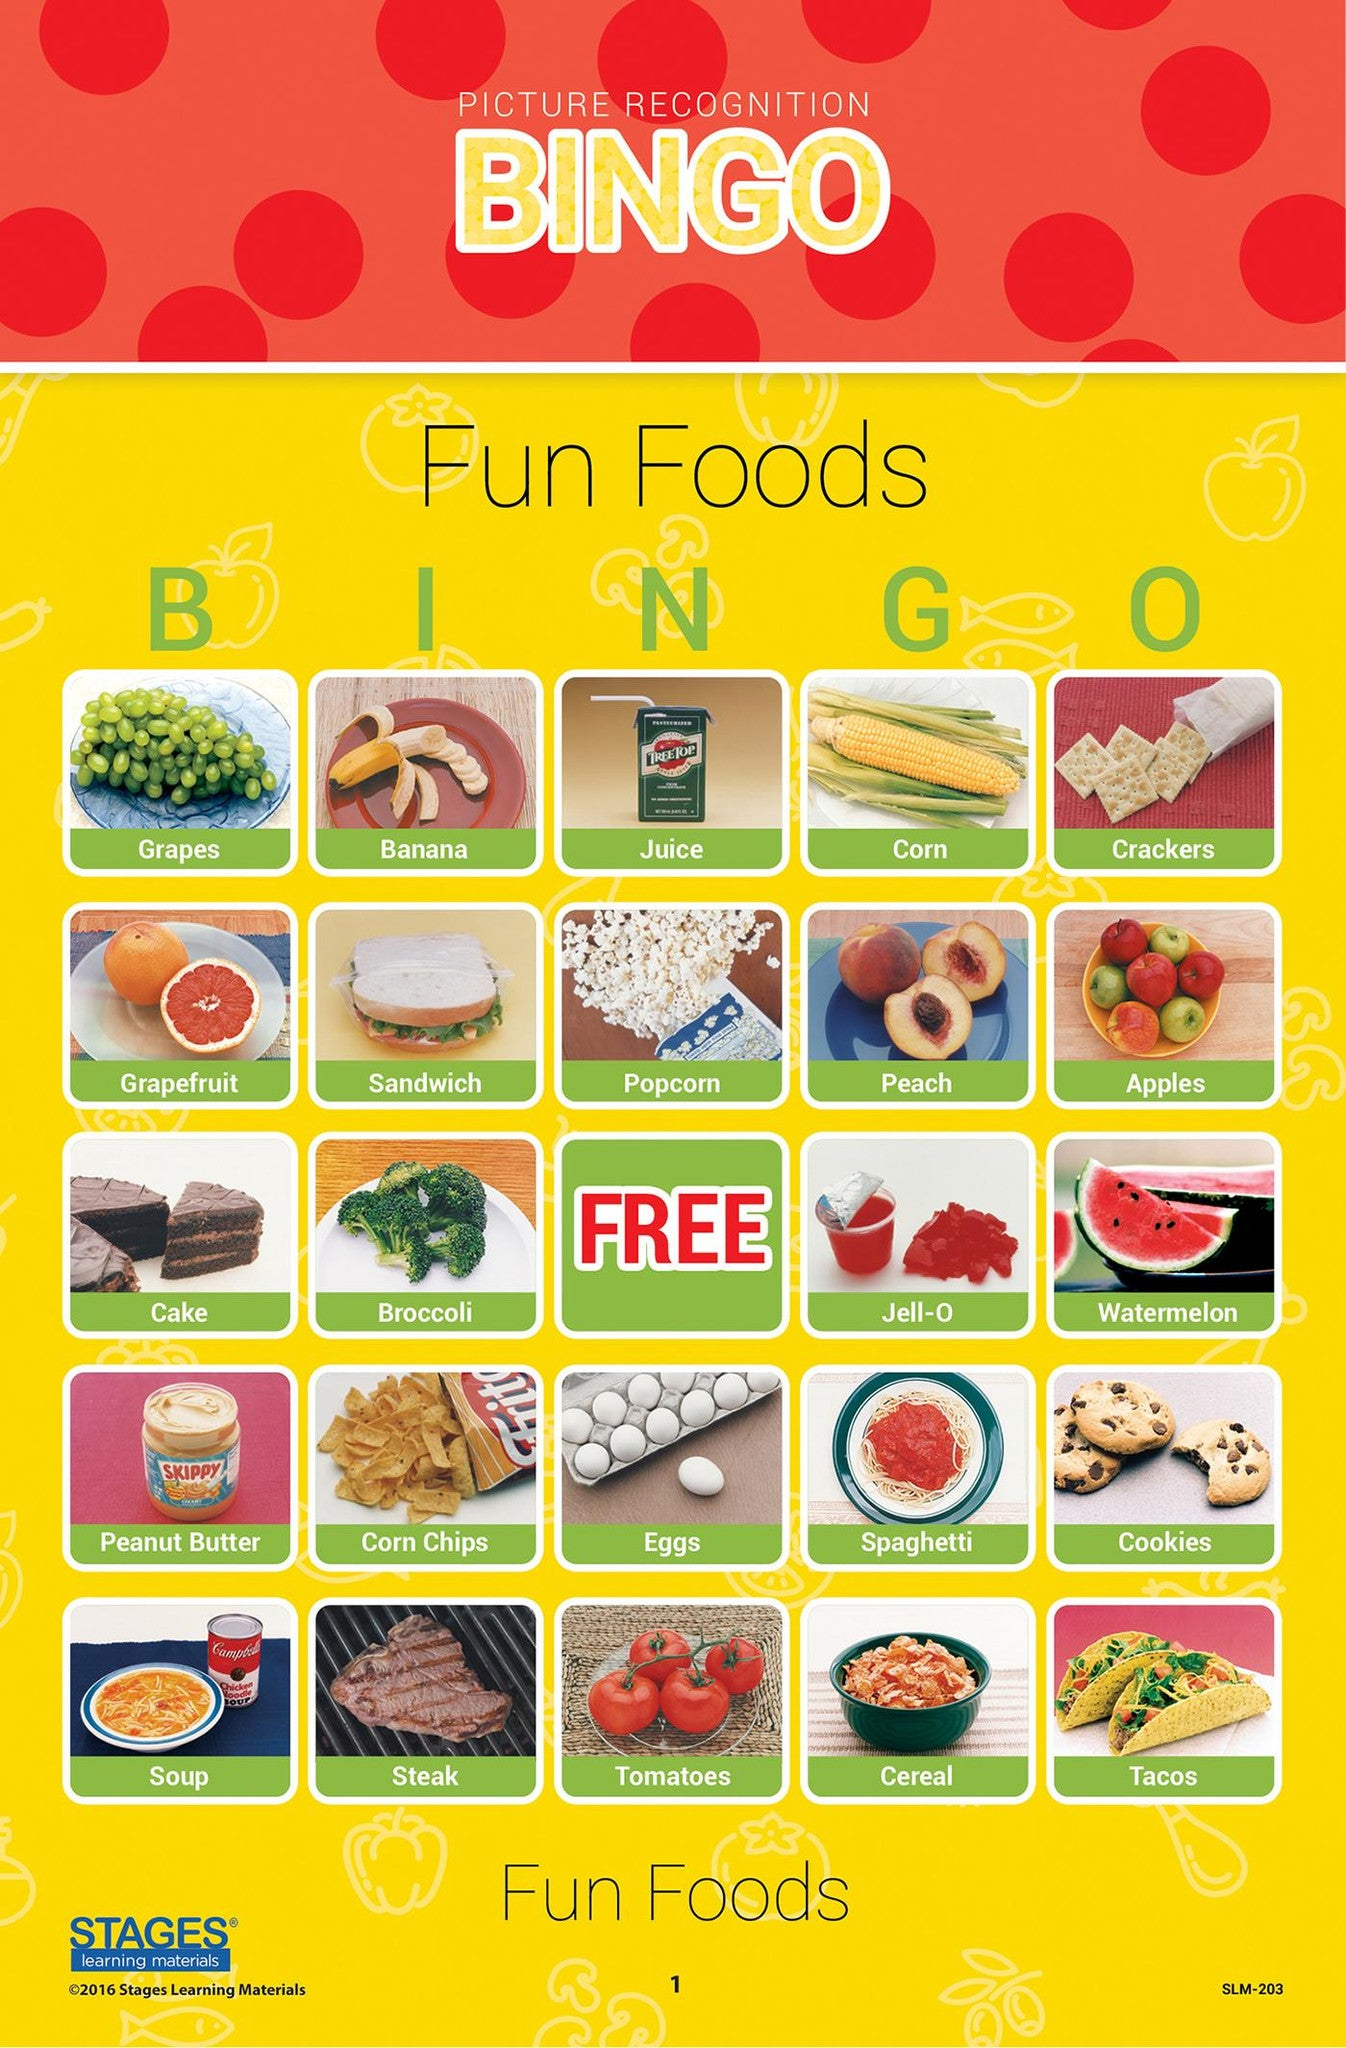 Fun Foods Bingo Game Stages Learning Materials